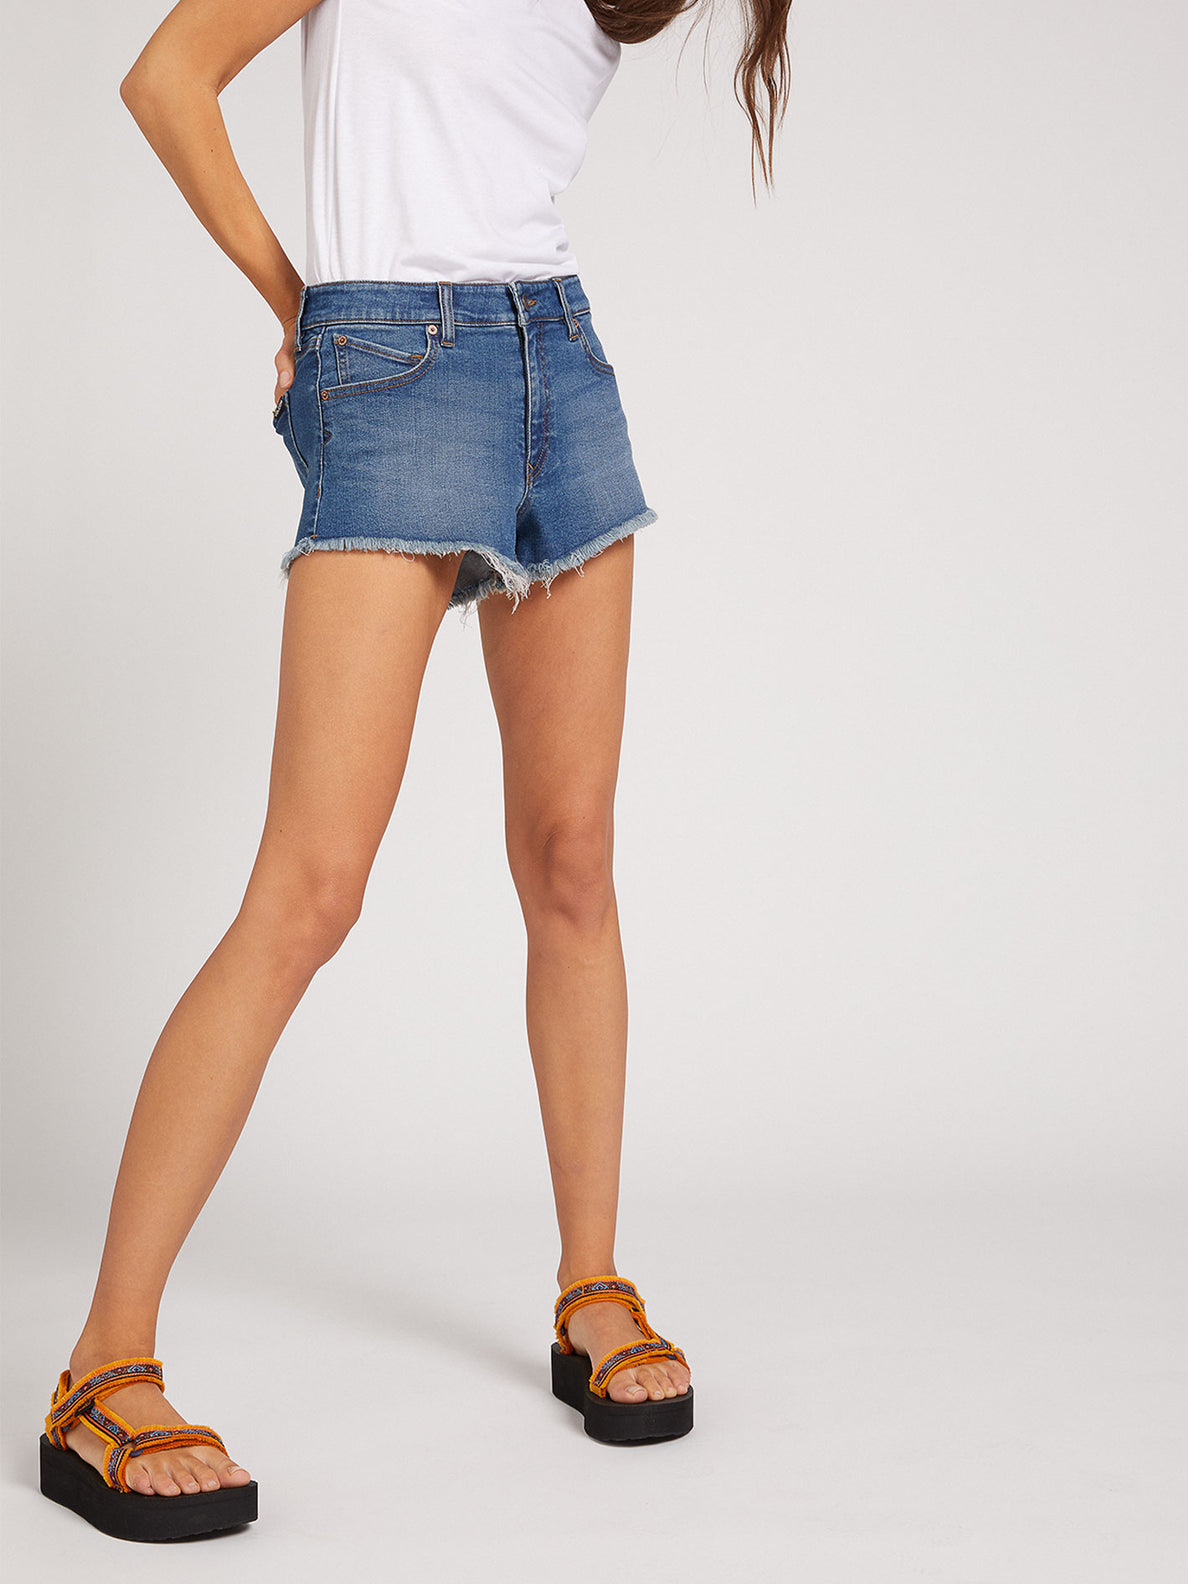 Stoney Stretch Shorts - Indigo Ridge Wash (B1921906_IRW) [17]